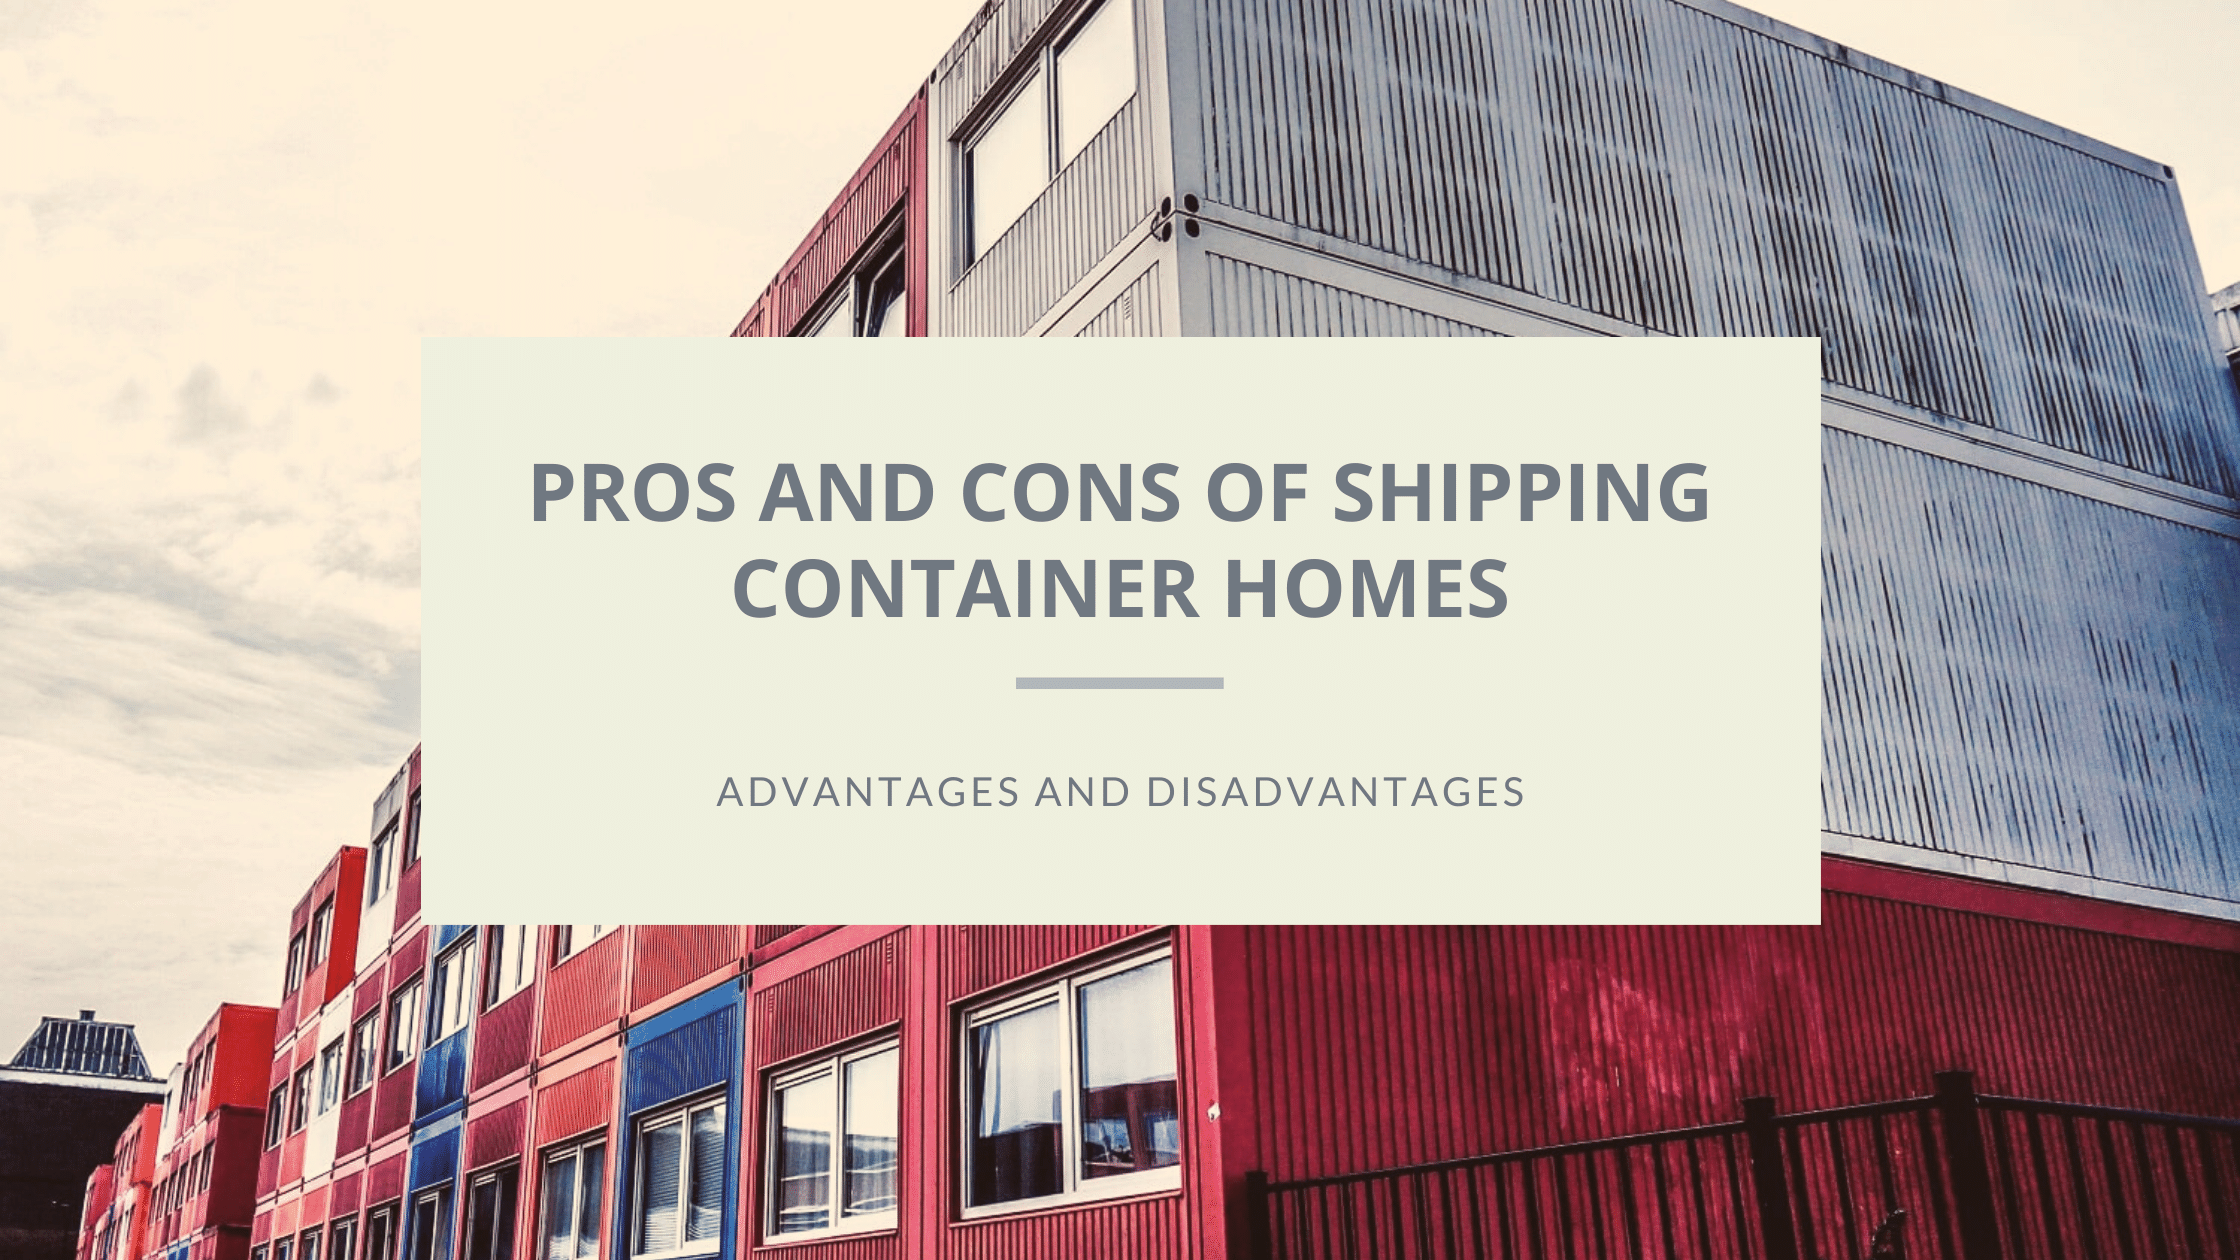 pros and cons of shipping container homes featured